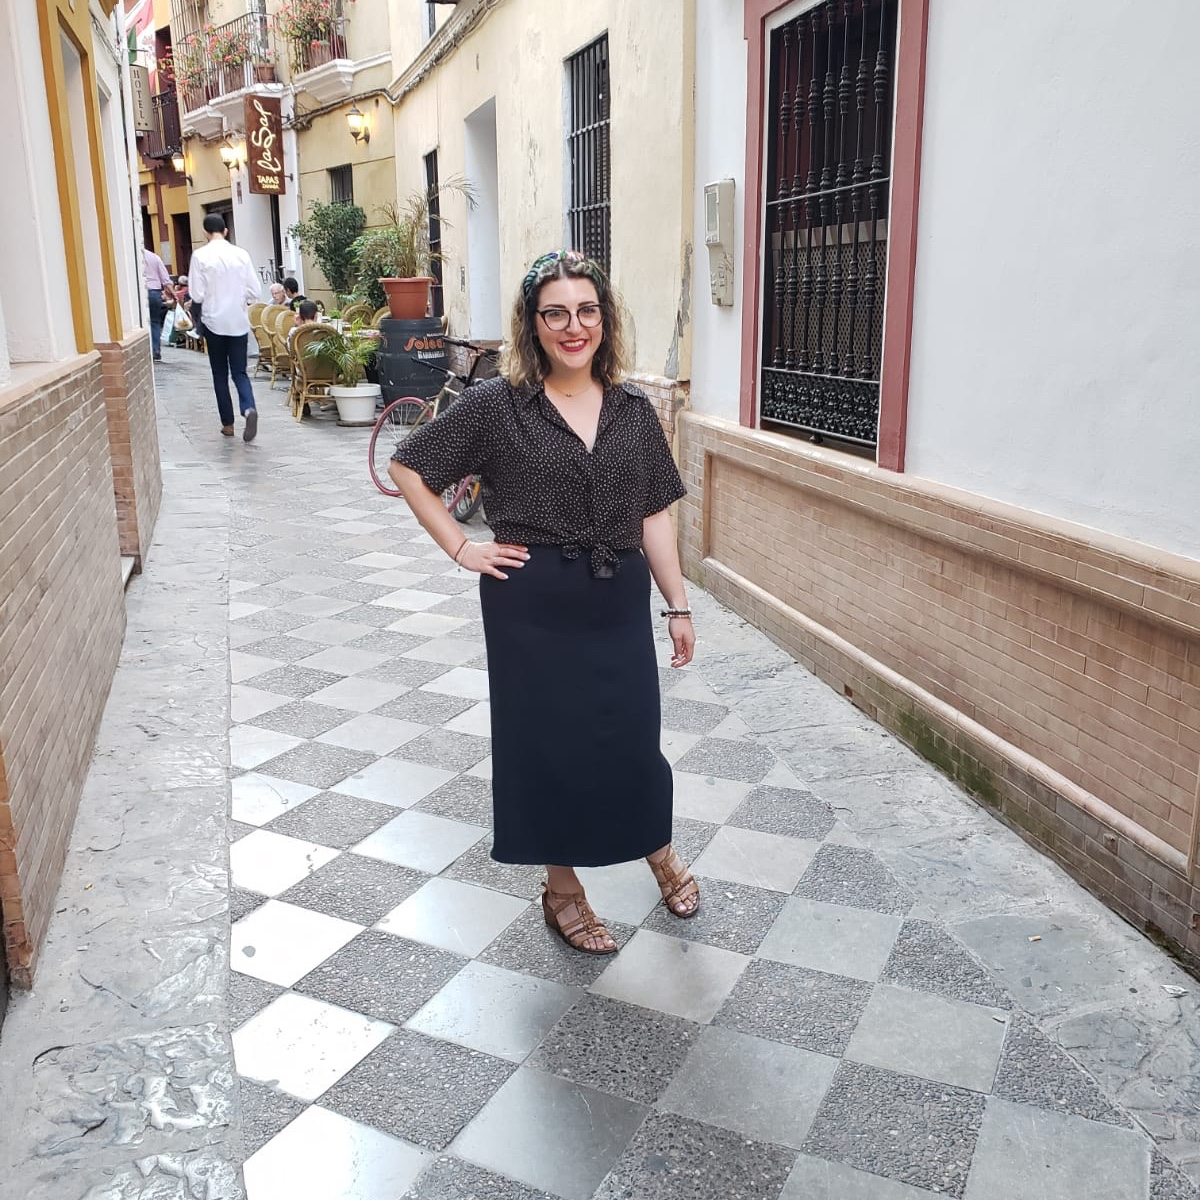 Author Leviana Coccia stands in an alleyway in Sevilla, Spain. She is wearing brown wedged sandals, a long blue skirt, a polka dot blouse and a colourful headband. Photo courtesy of: Leviana Coccia.